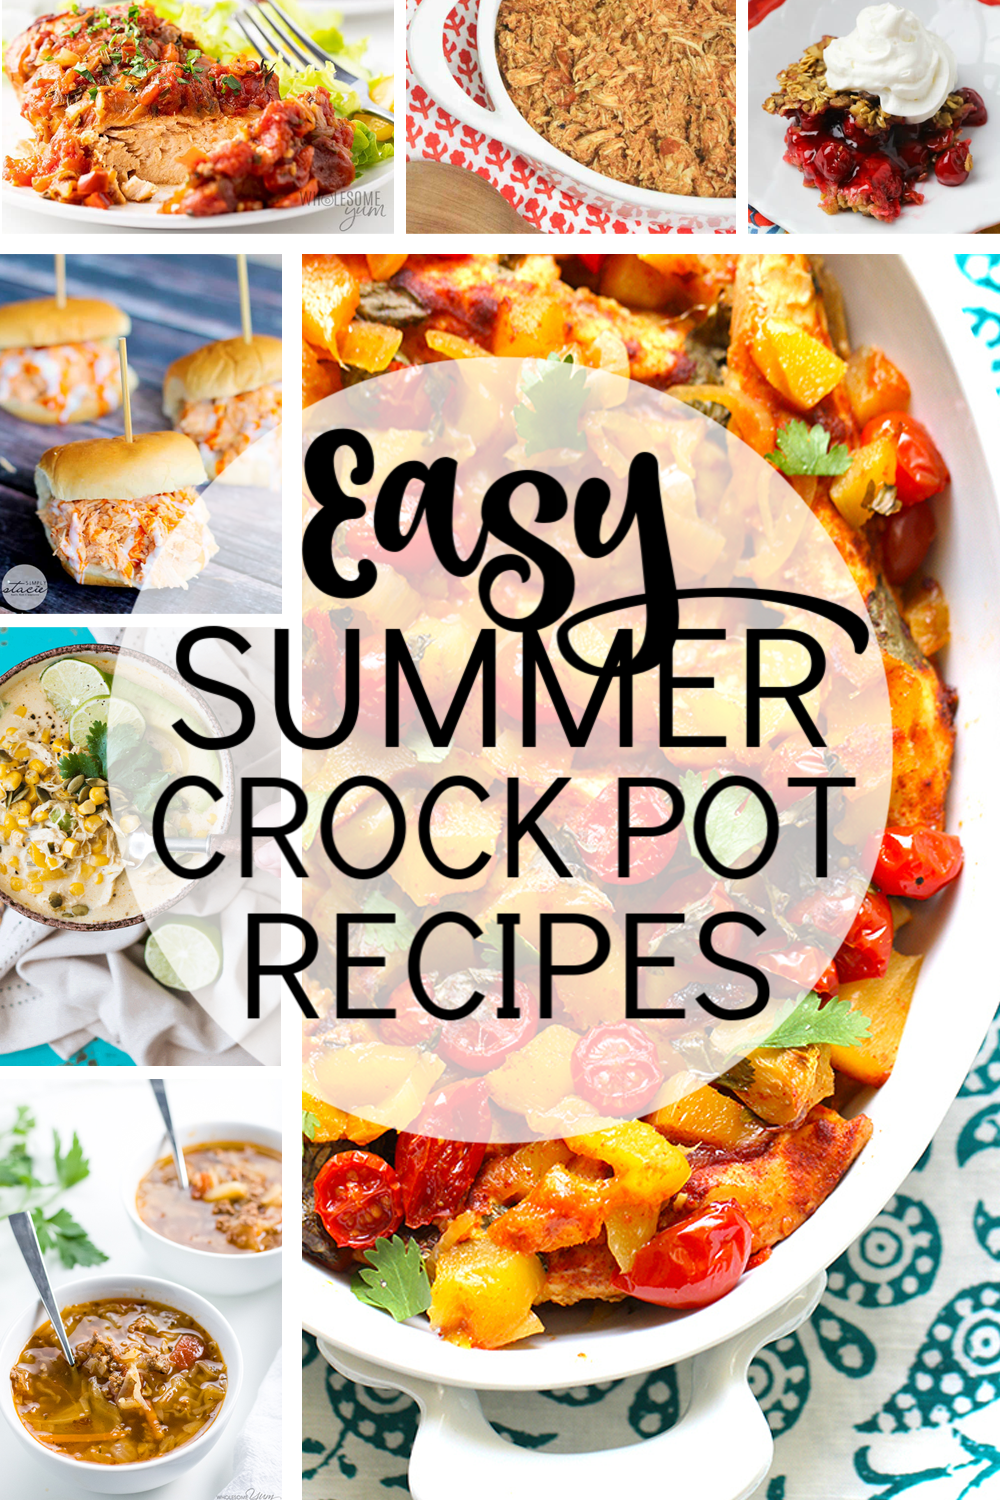 These Easy Summer Crockpot Recipes Will Have You Out Of The Kitchen And Out Spending Time In The Beautifu Summer Crockpot Recipes Crockpot Recipes Easy Recipes